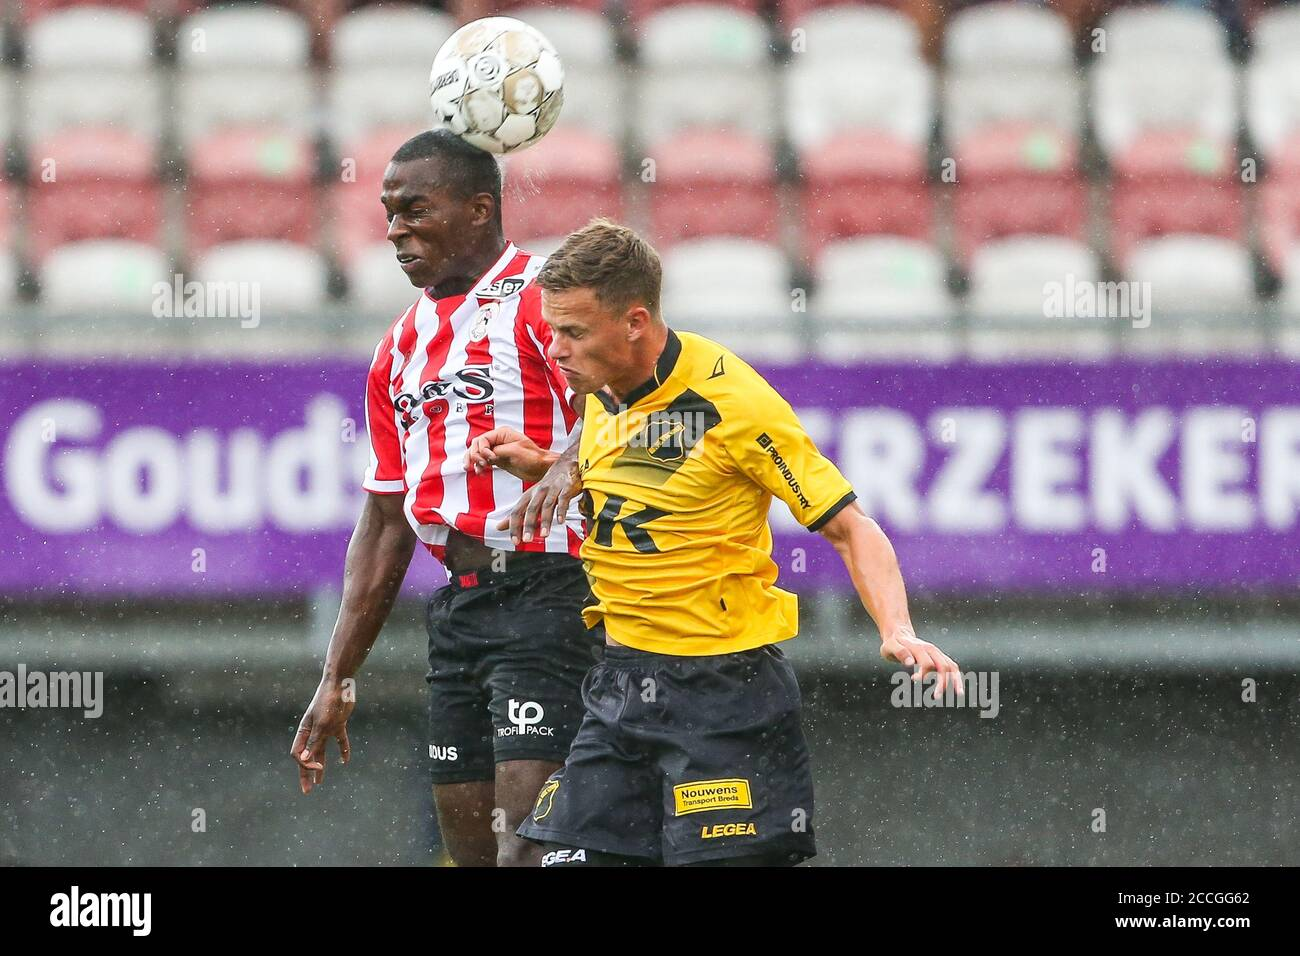 Lassana Faye High Resolution Stock Photography And Images Alamy